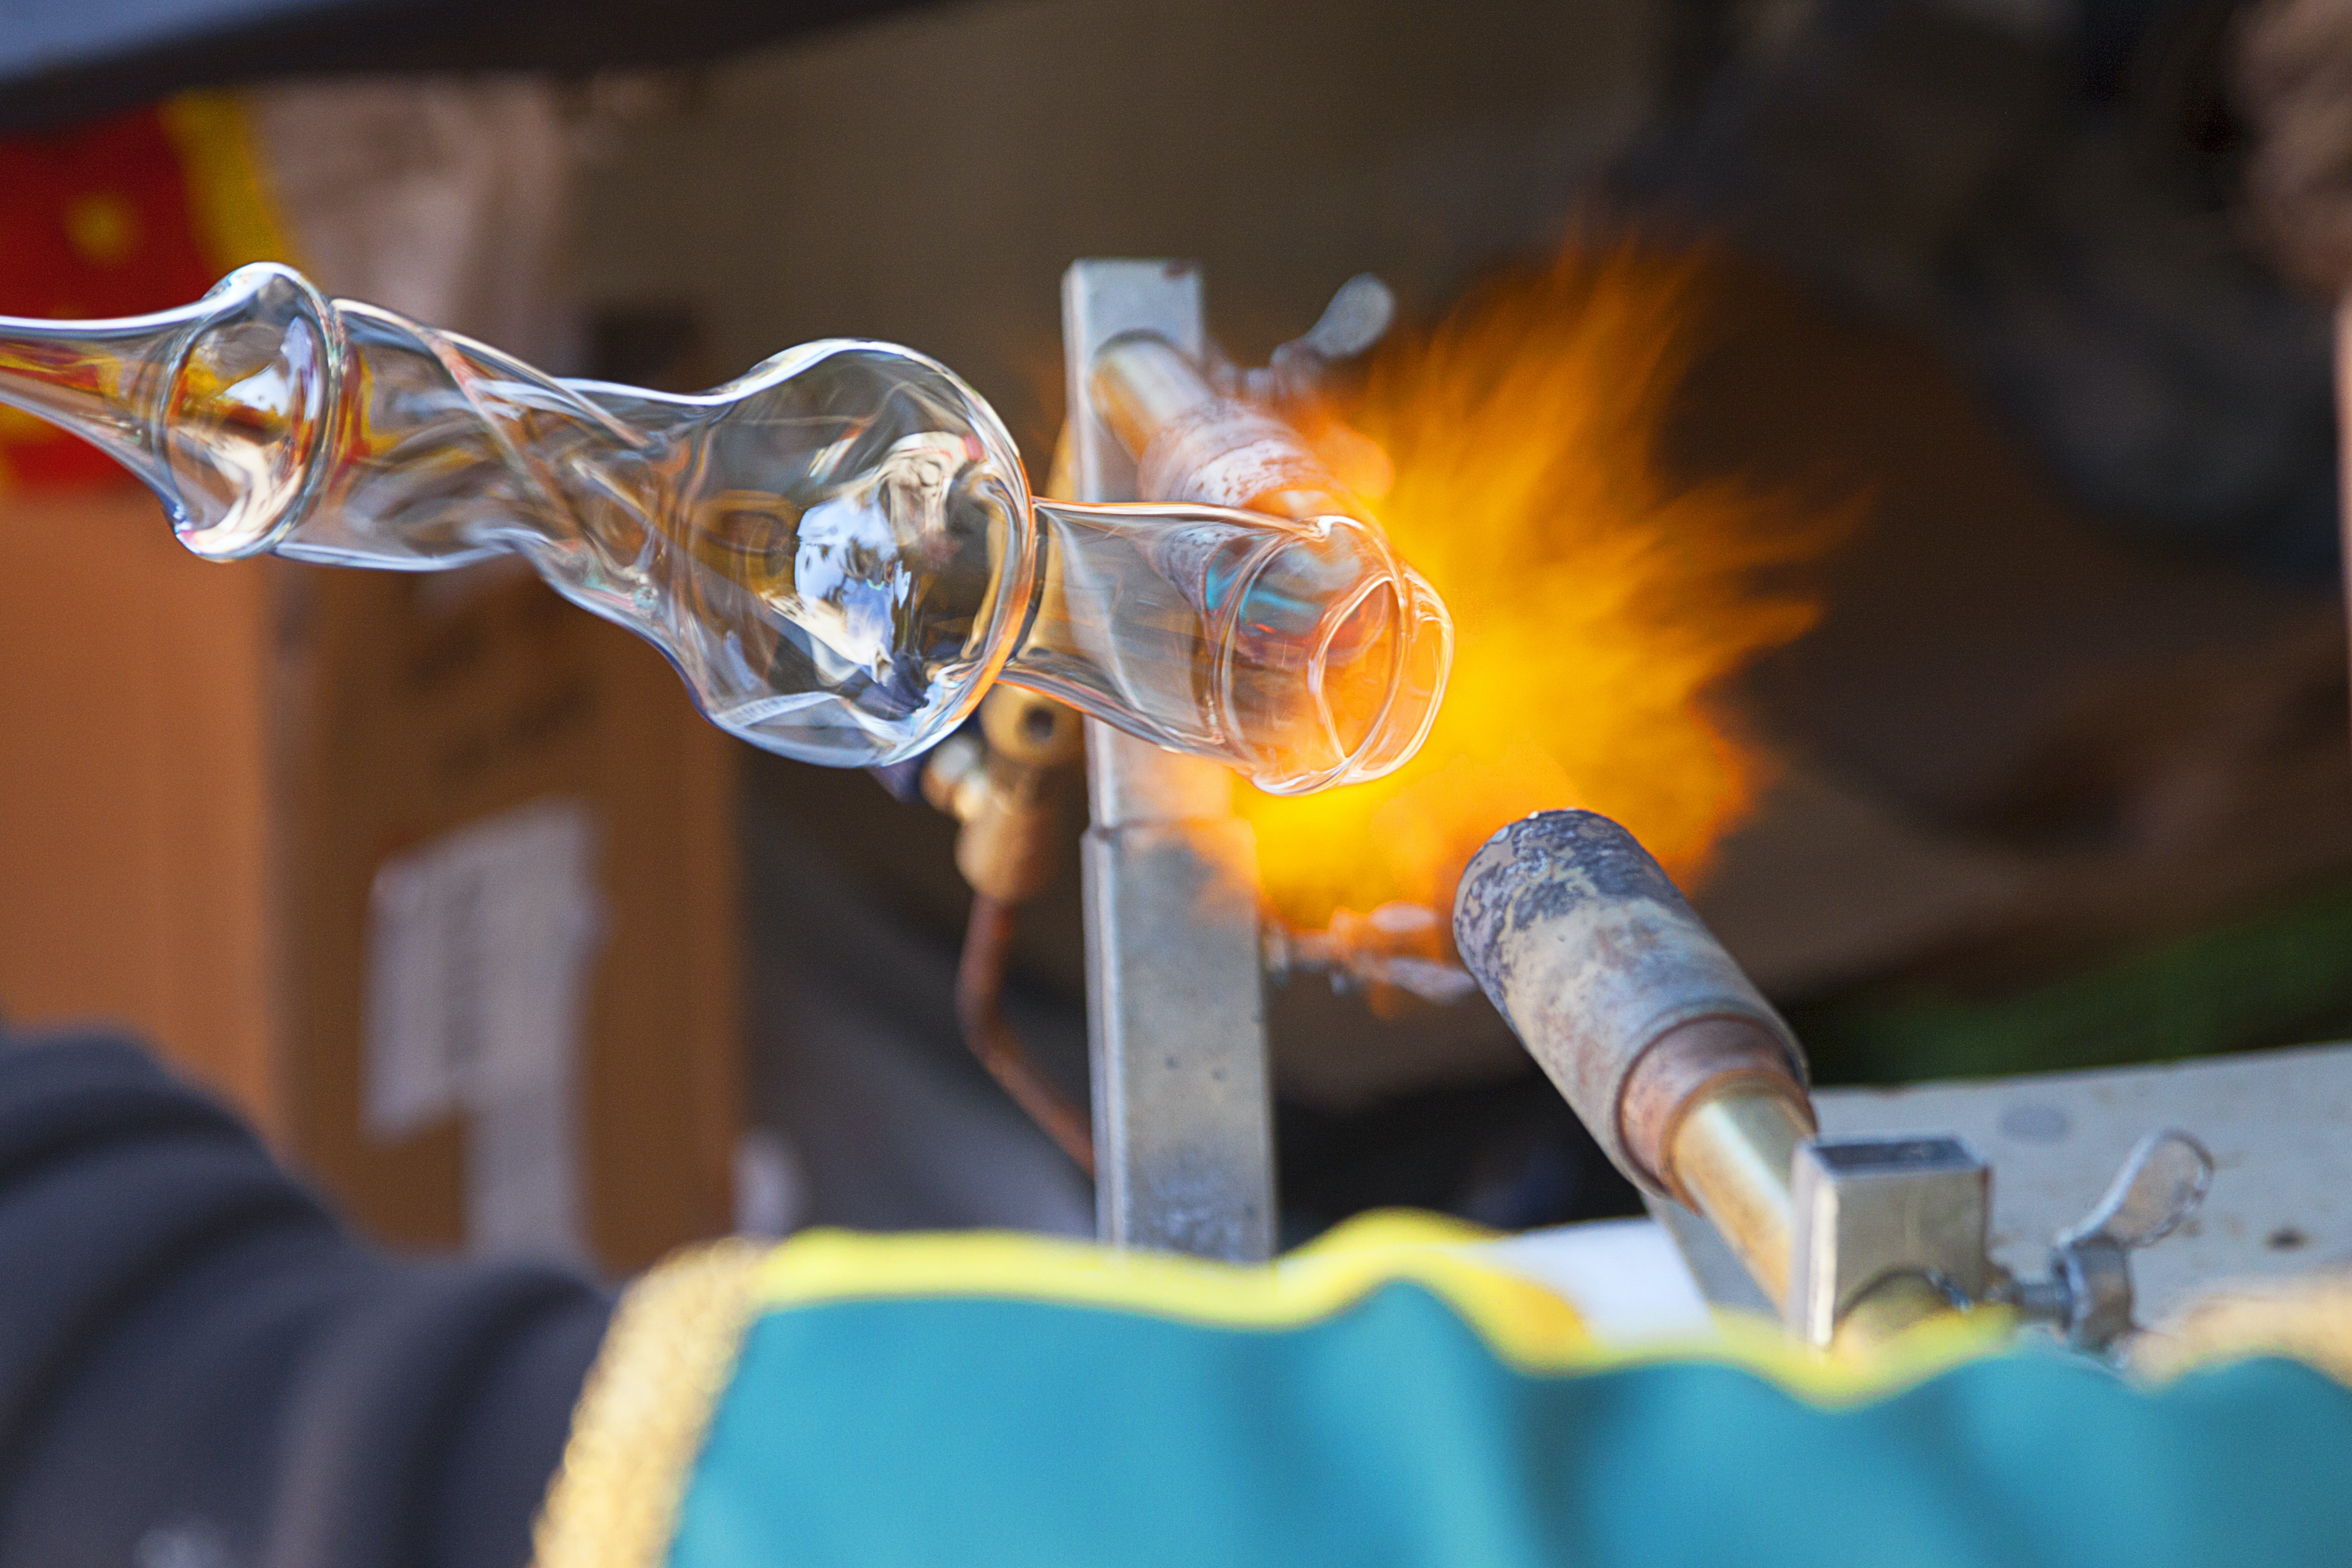 Burner shaping glass art at a glass blowing studio